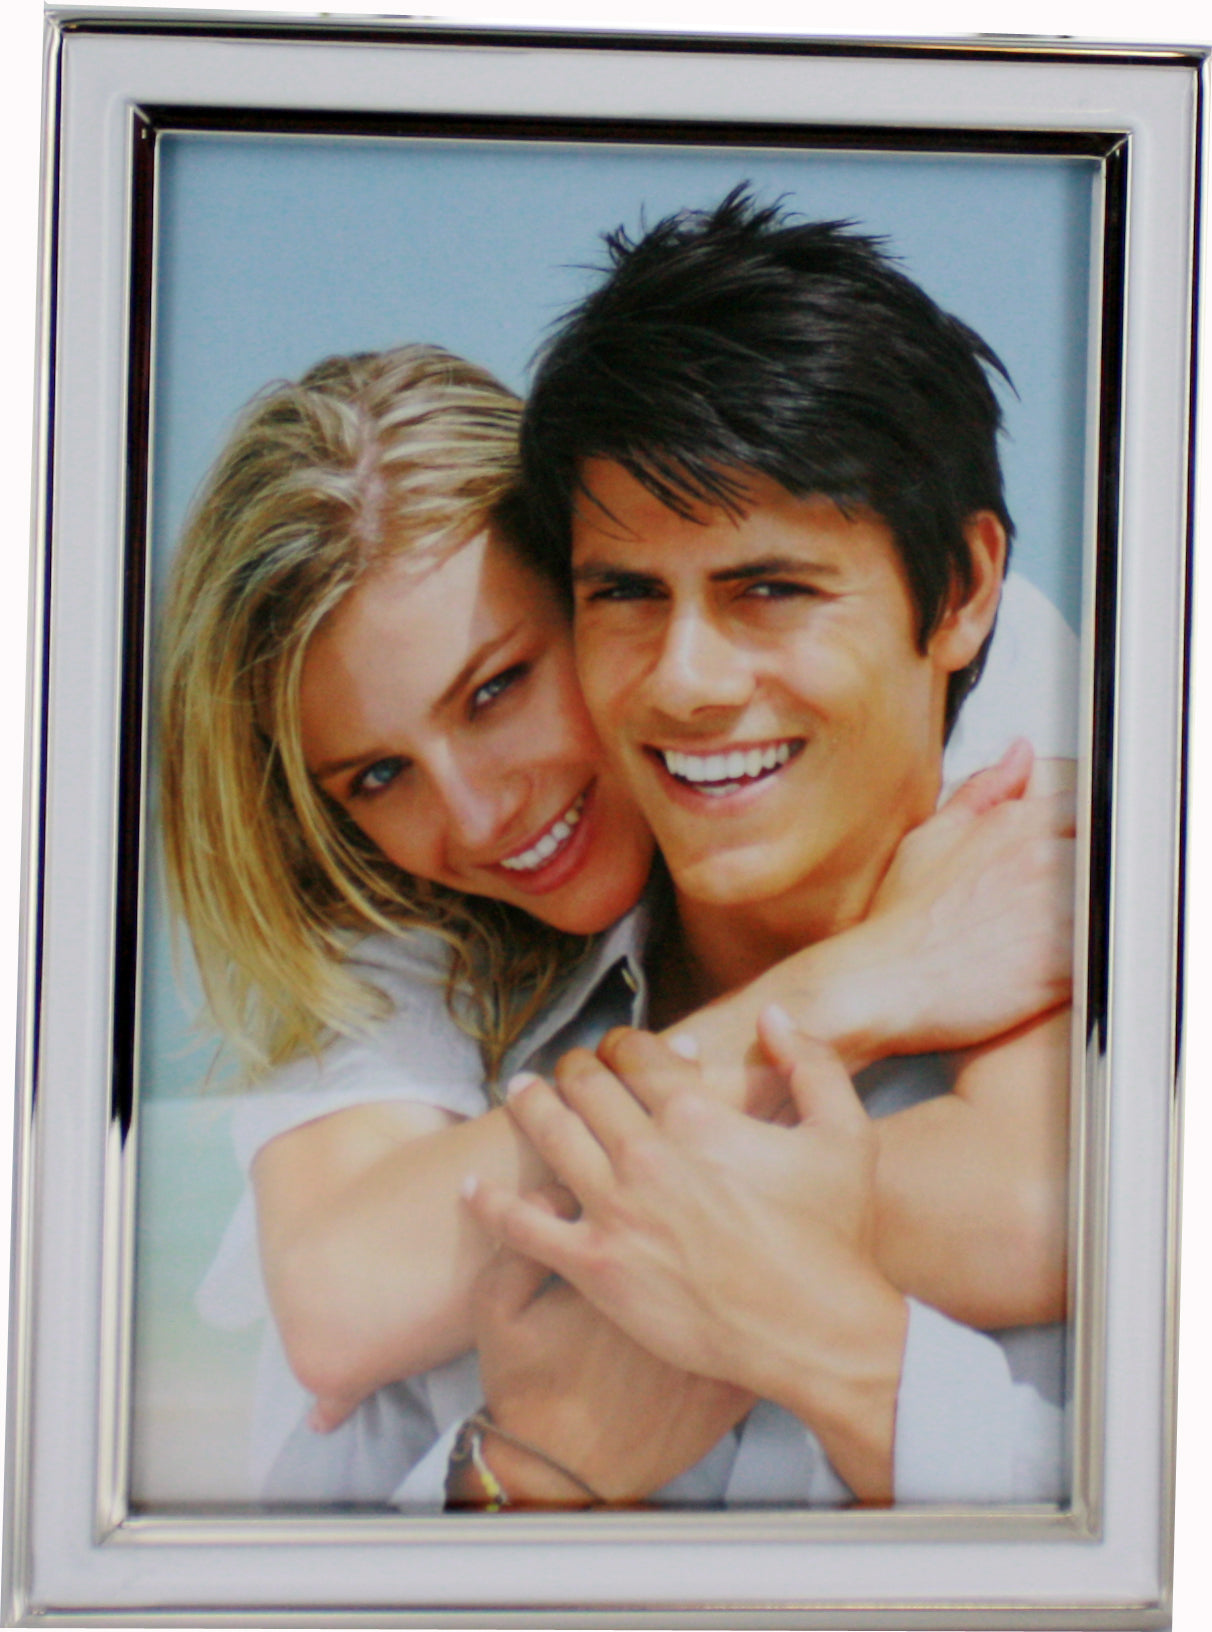 5x7 White Epoxy Resin Nickel Plated Photo Frame